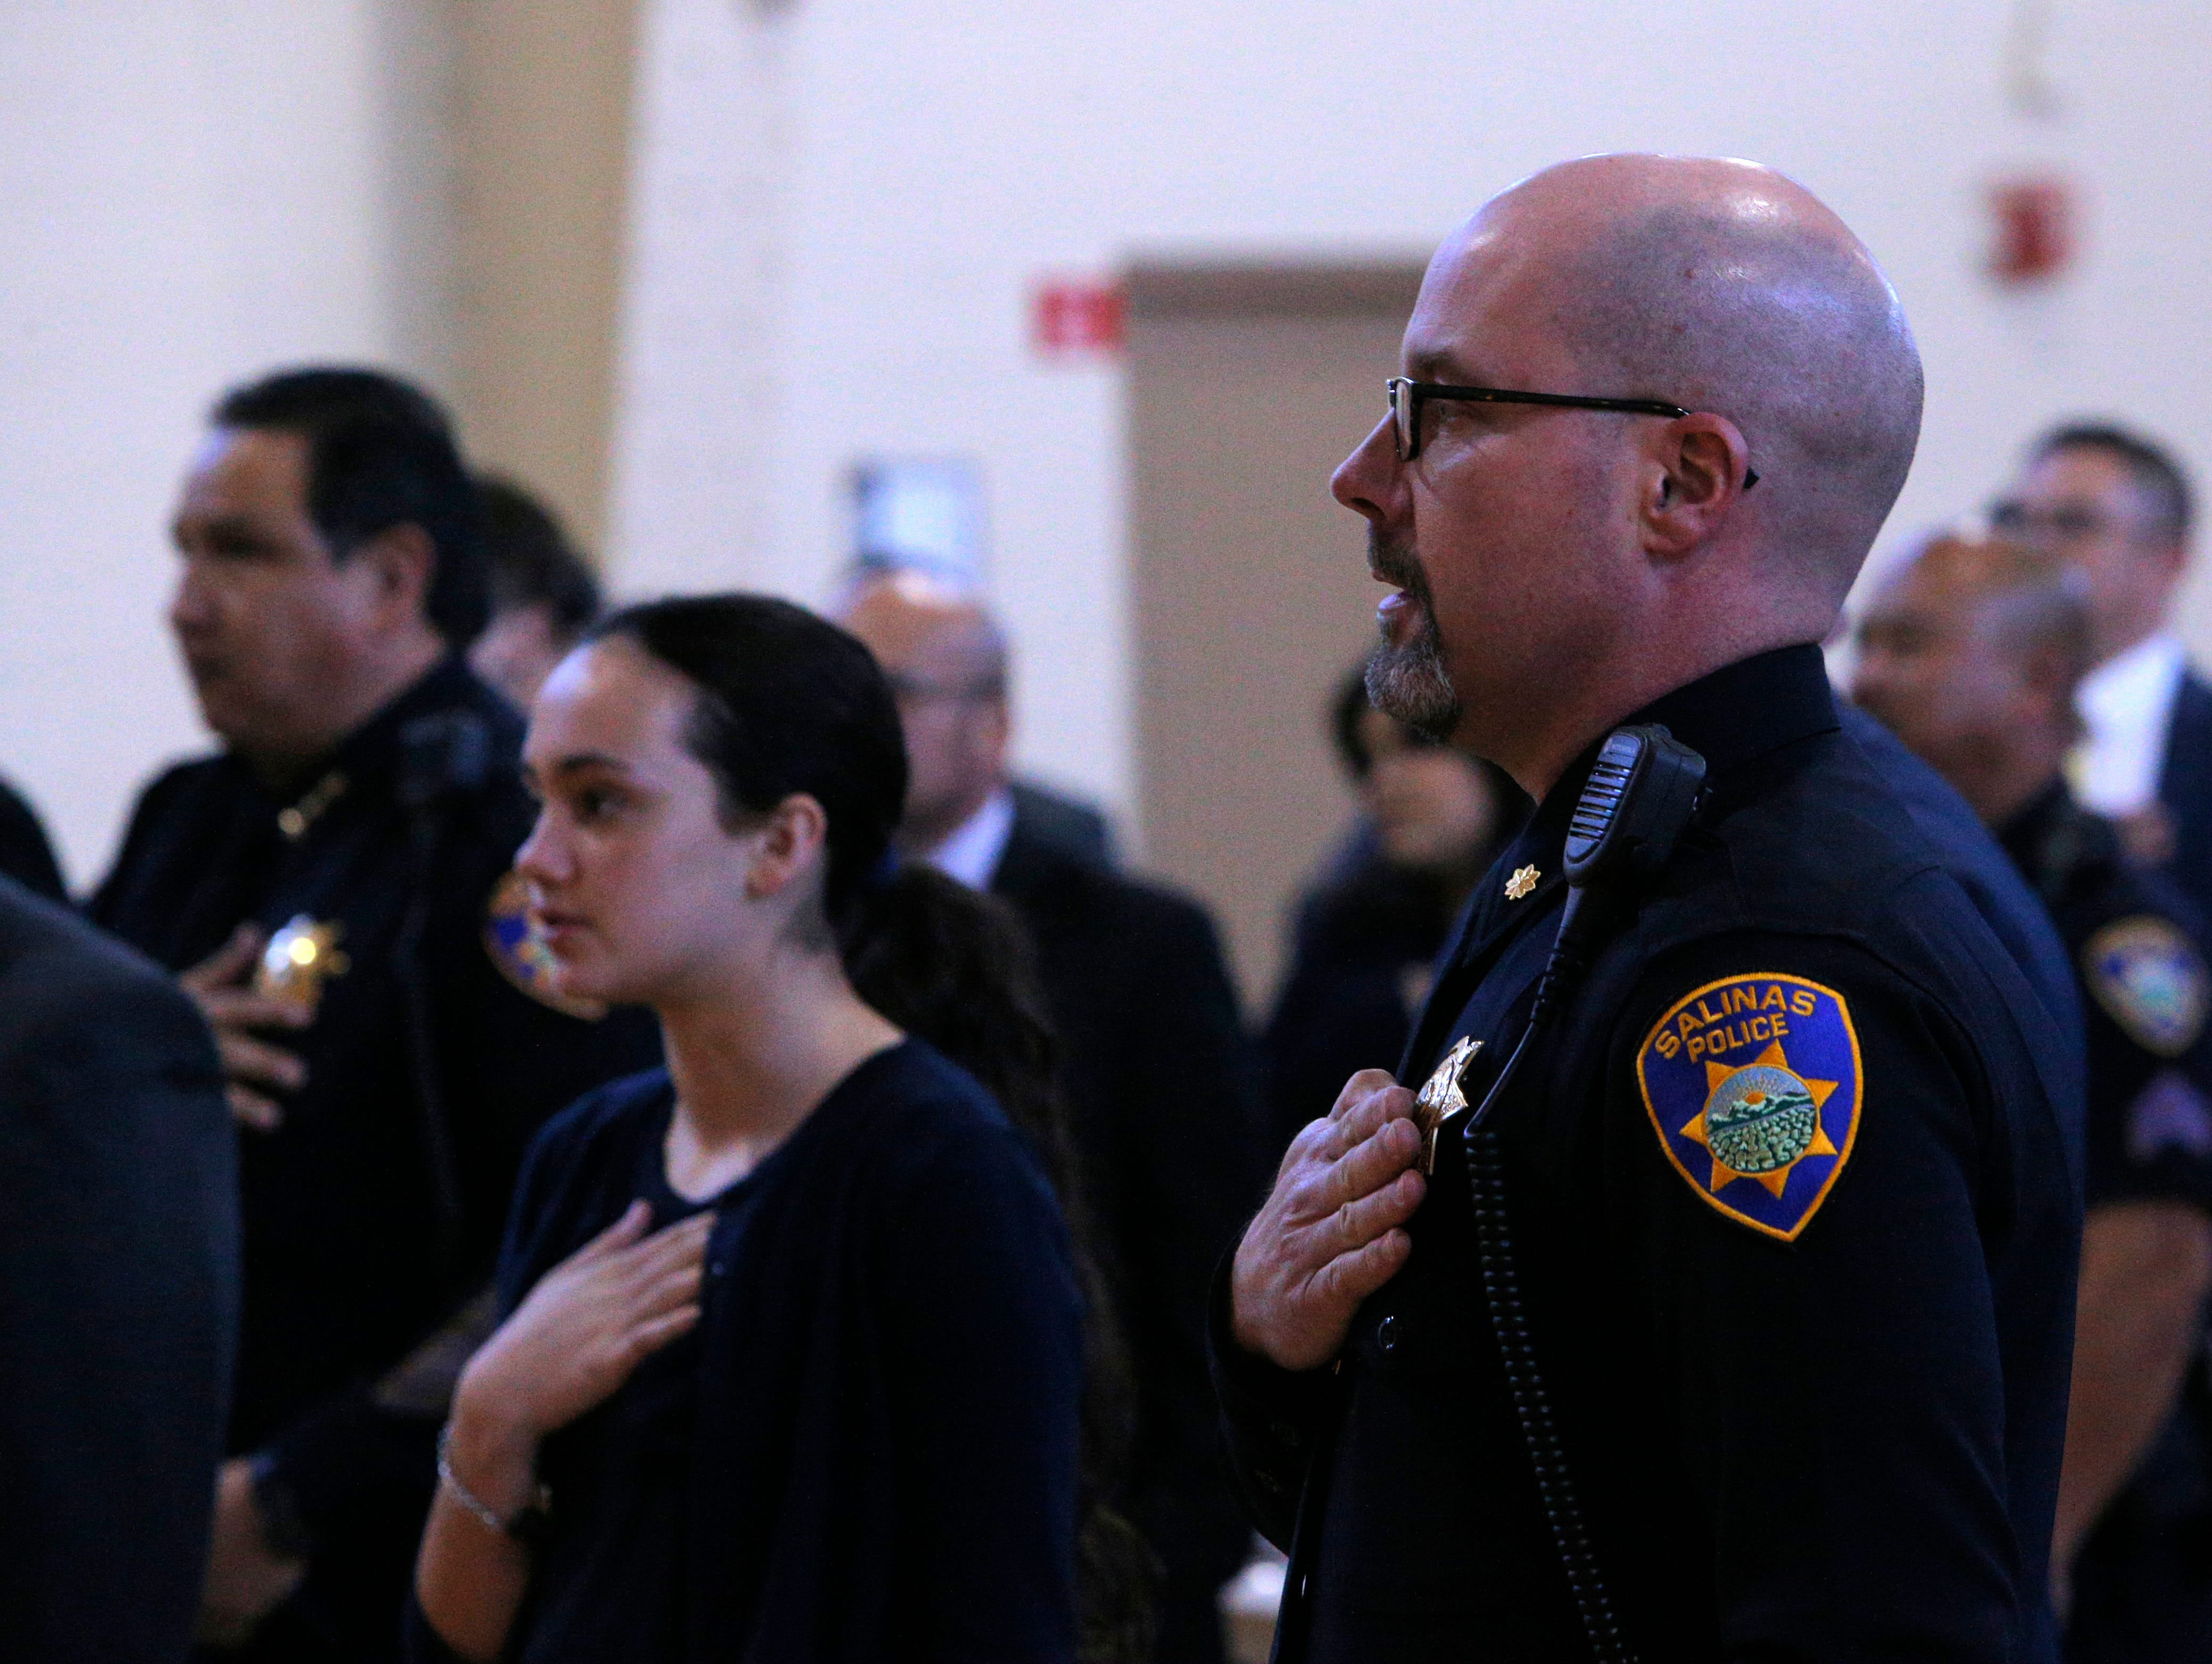 Salinas police Cmdr. John Murray recites the Pledge of Allegiance March 14, 2019, at the Salinas Police Department's 2018 awards ceremony.